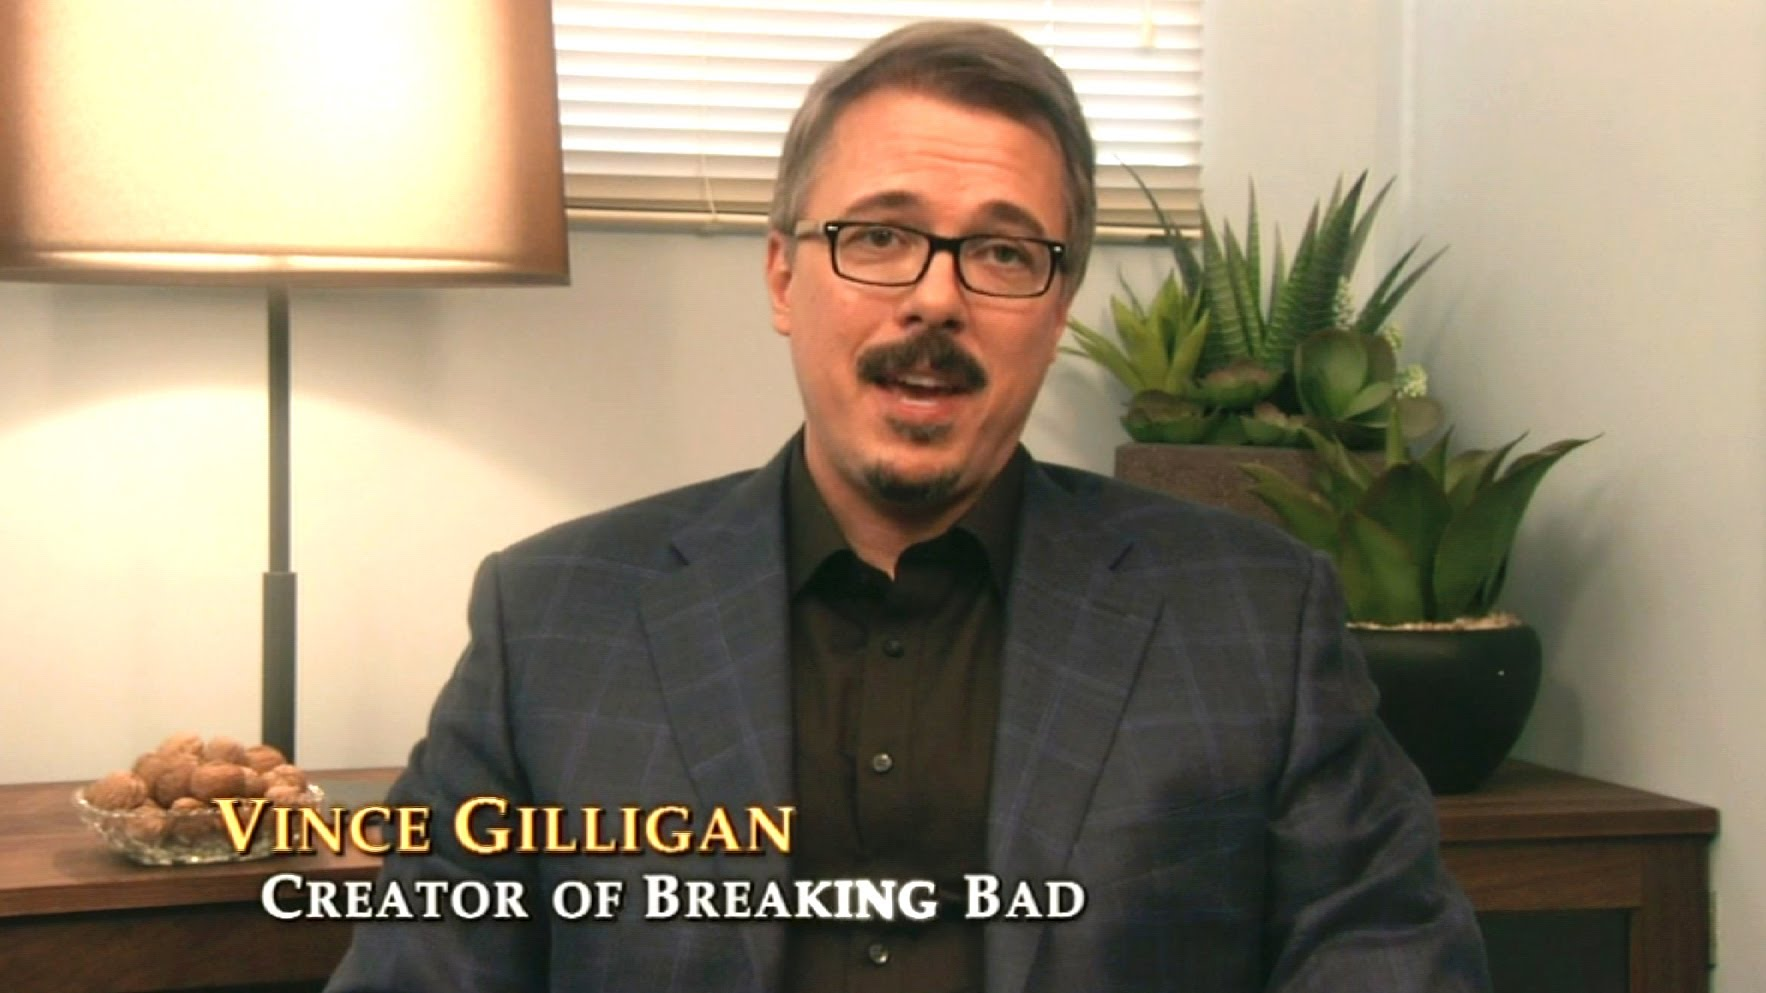 vince gilligan irish